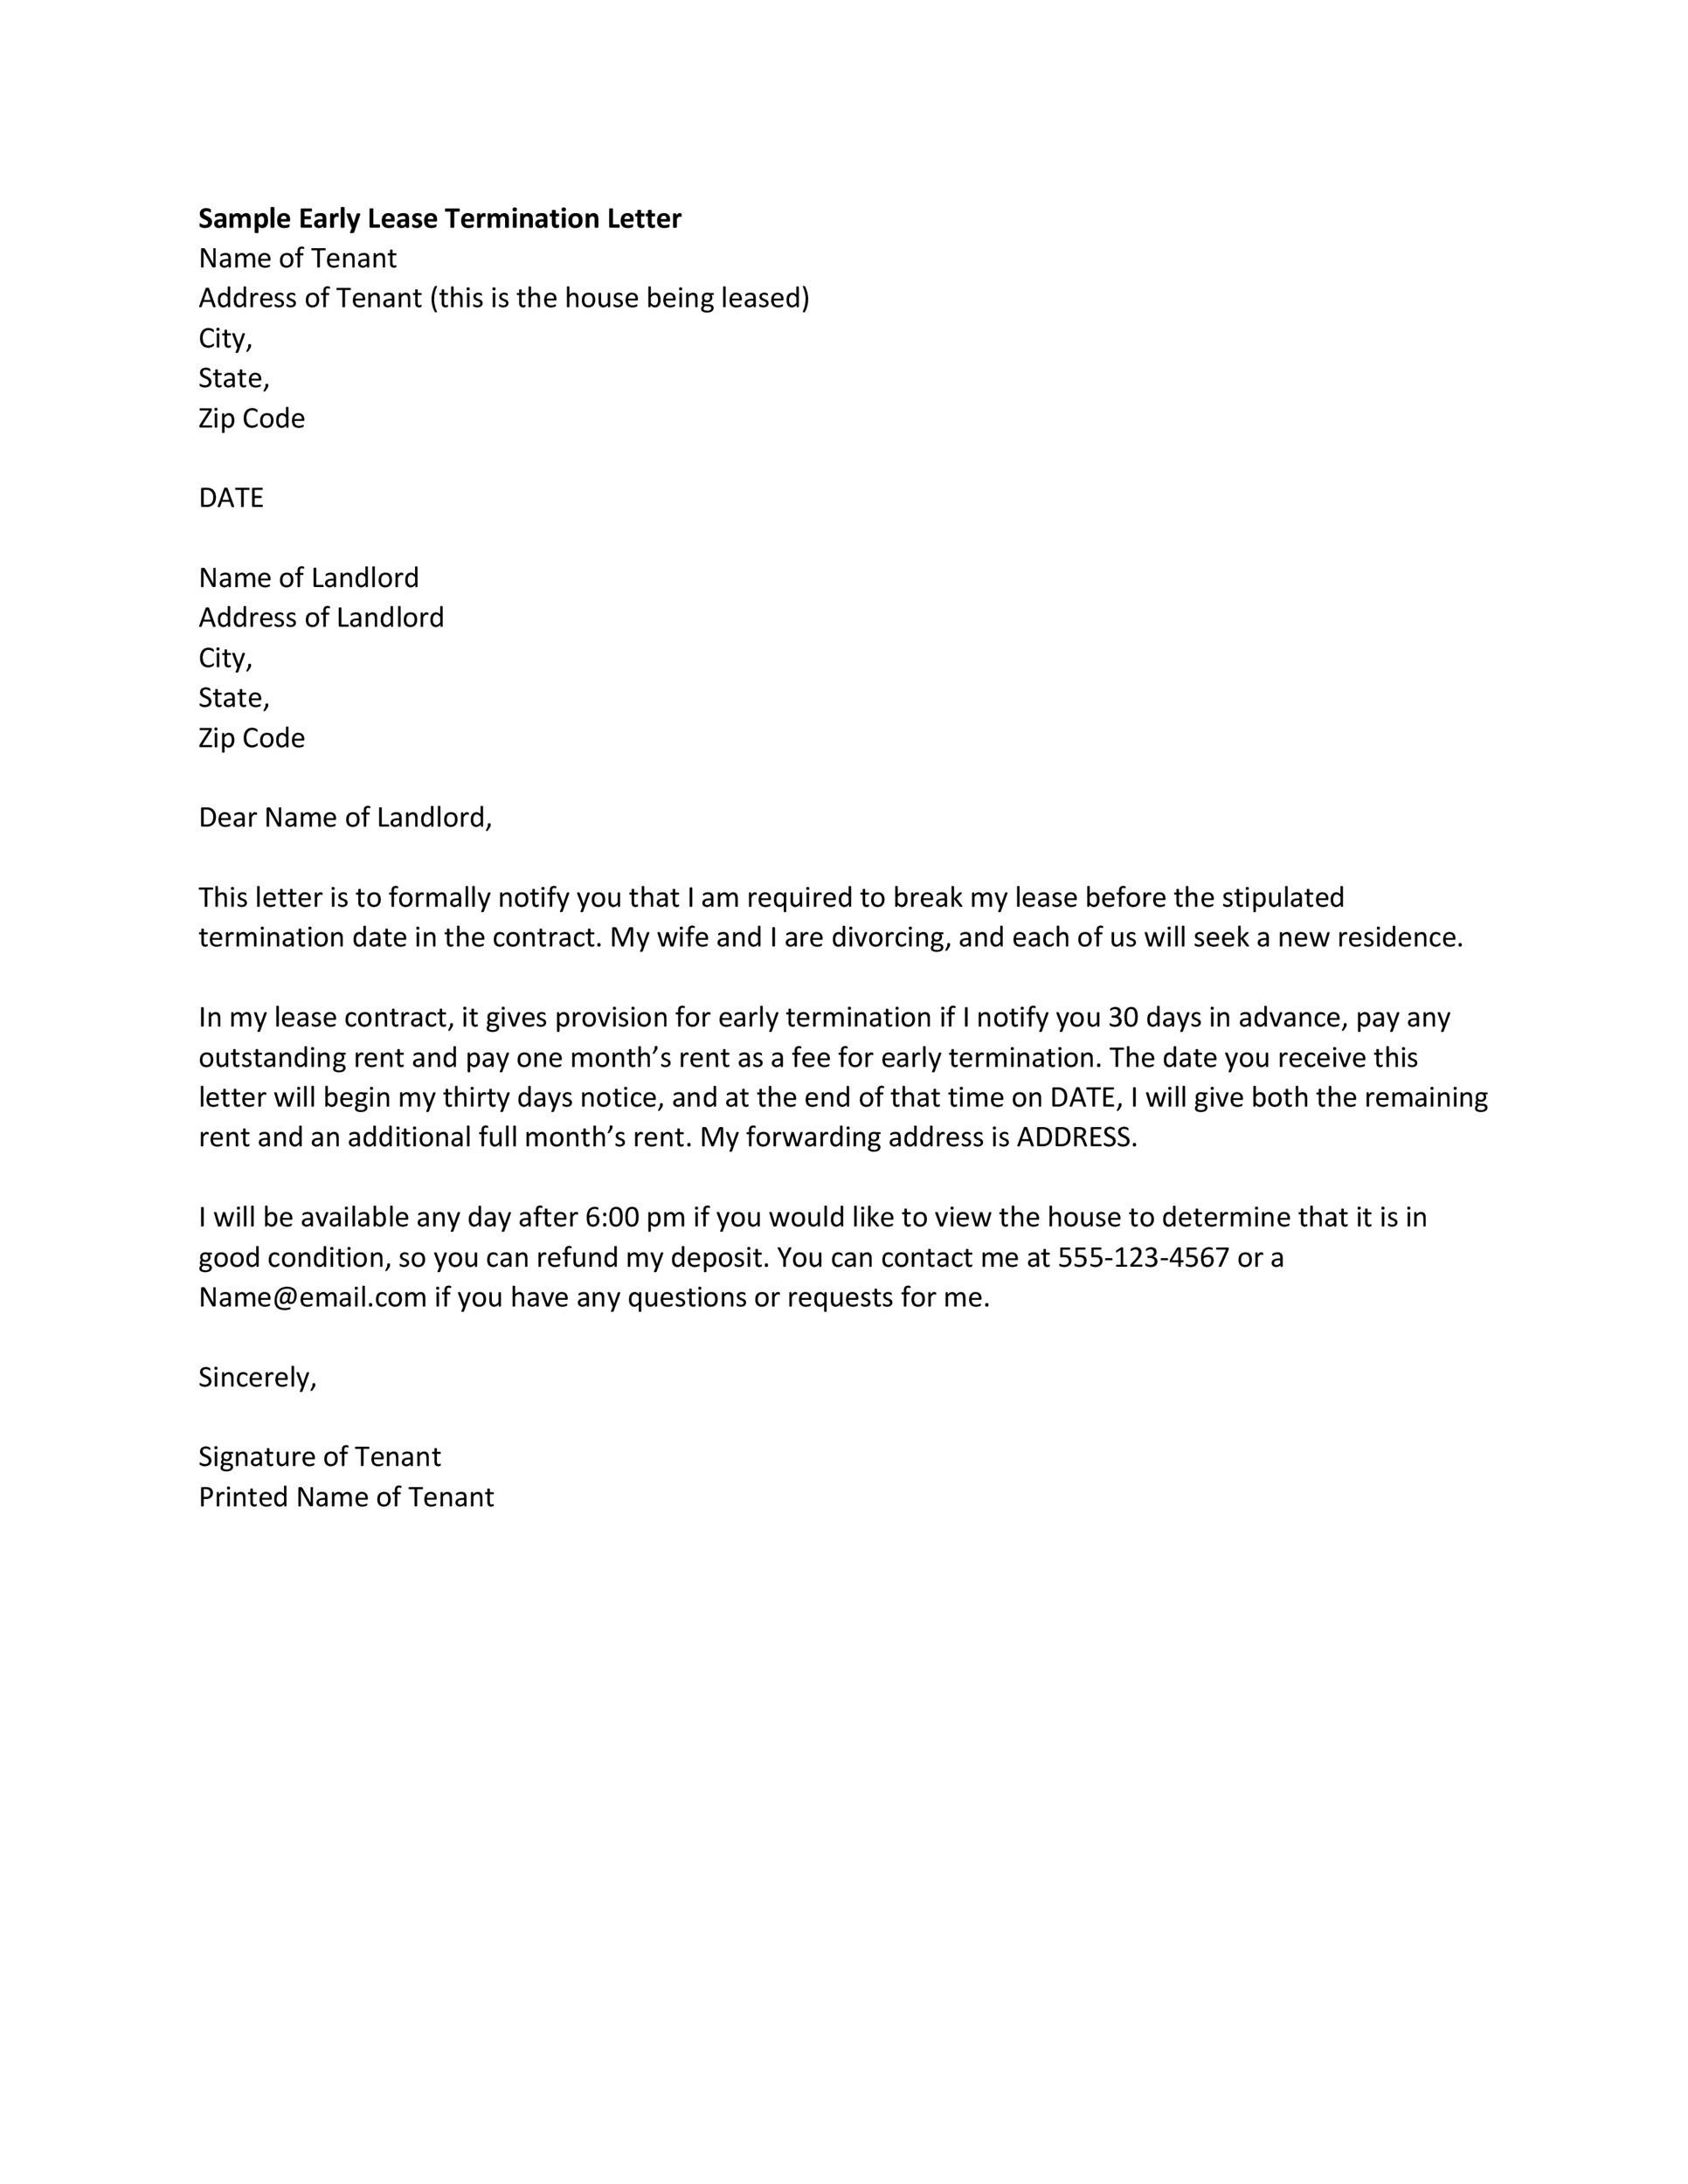 Sample Of Termination Letters | Template